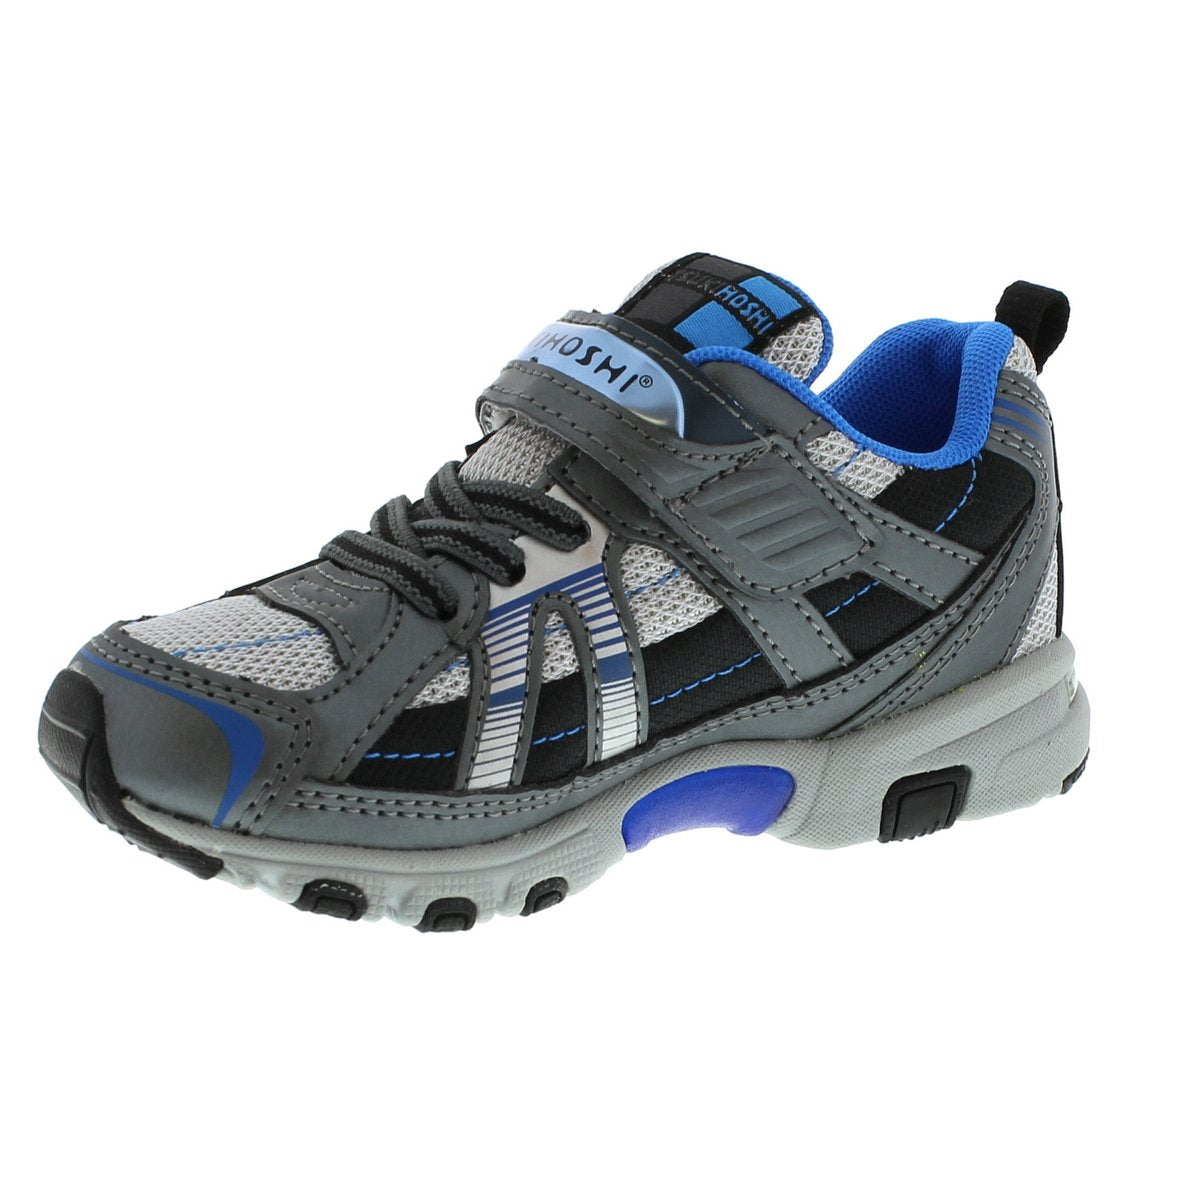 Childrens Tsukihoshi Storm Sneaker in Graphite/Royal from the front view